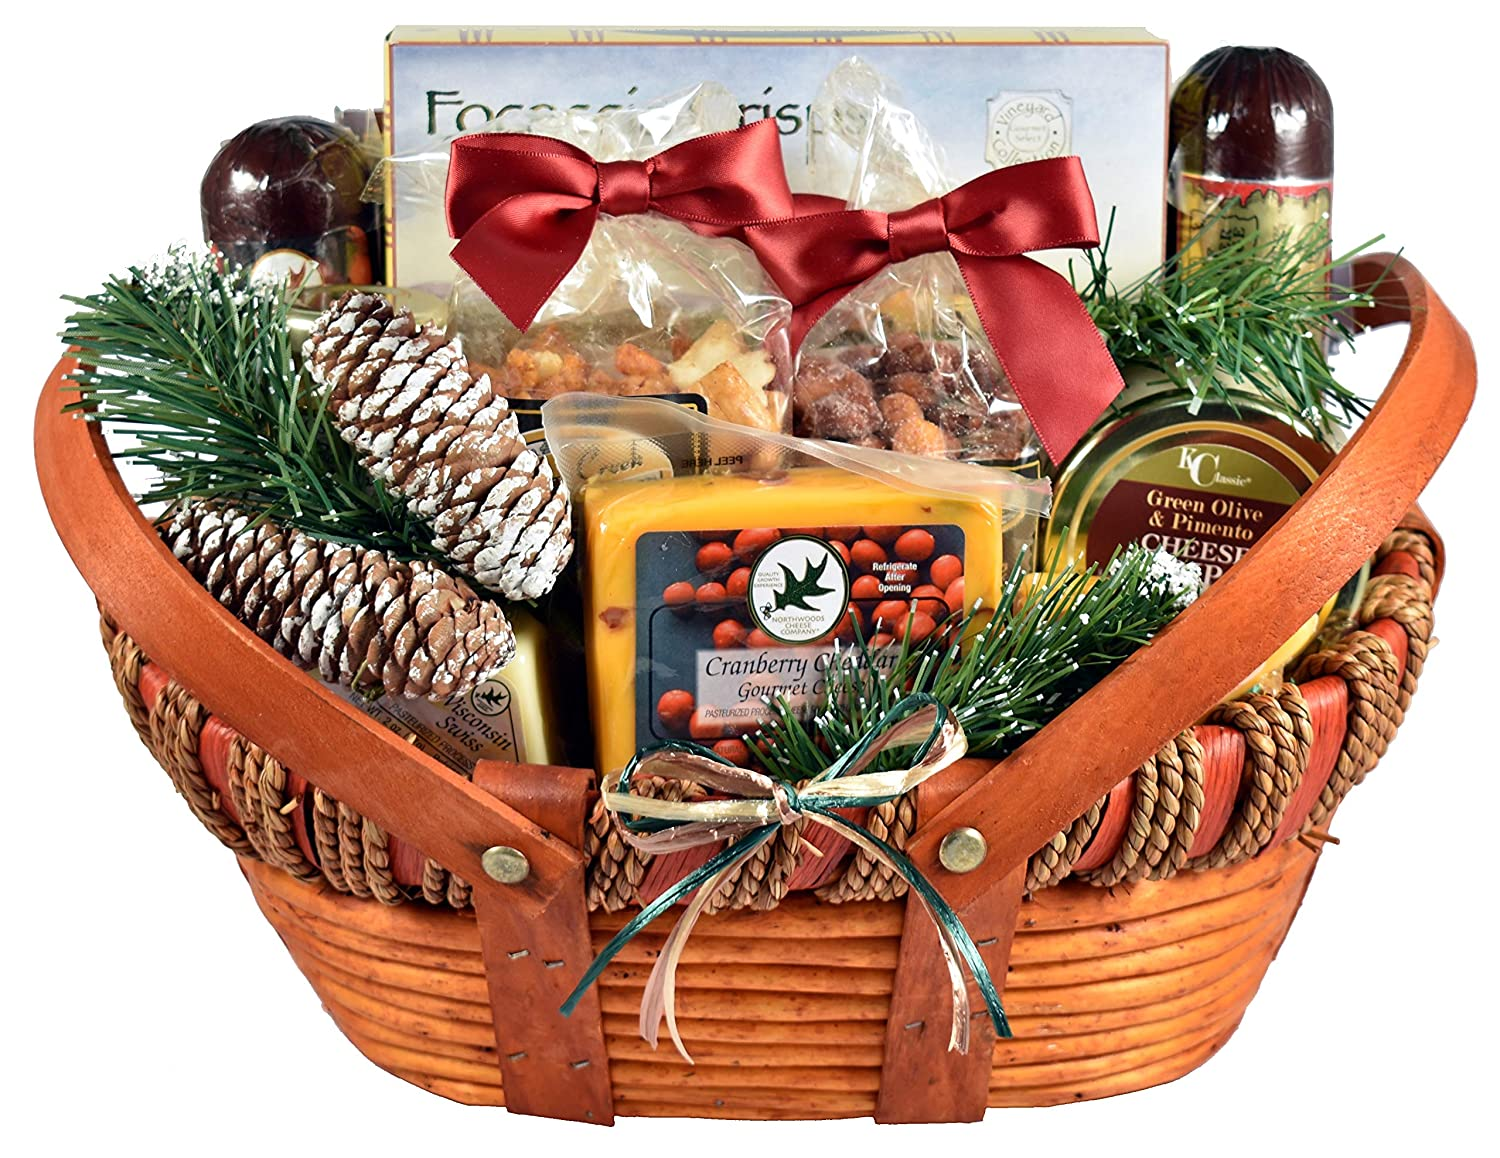 Amazon Com Gift Basket Village Home For The Holidays Cheese And Sausage Christmas Gift Basket With Wisconsin Cheeses And Unique Sausages 6 Pound Gourmet Baked Goods Gifts Grocery Gourmet Food